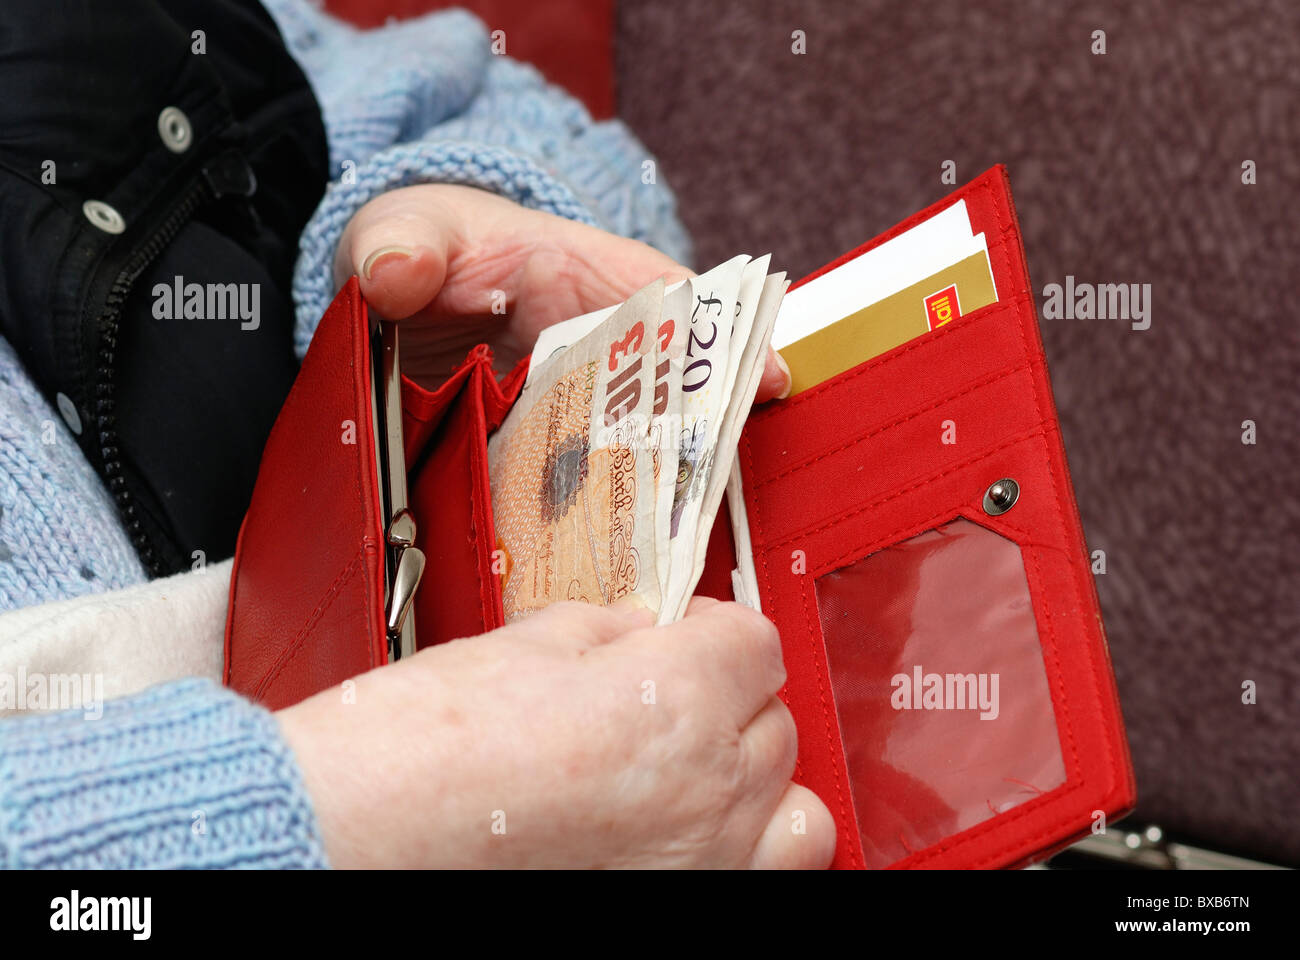 pensioner with open purse showing English currency notes - Stock Image